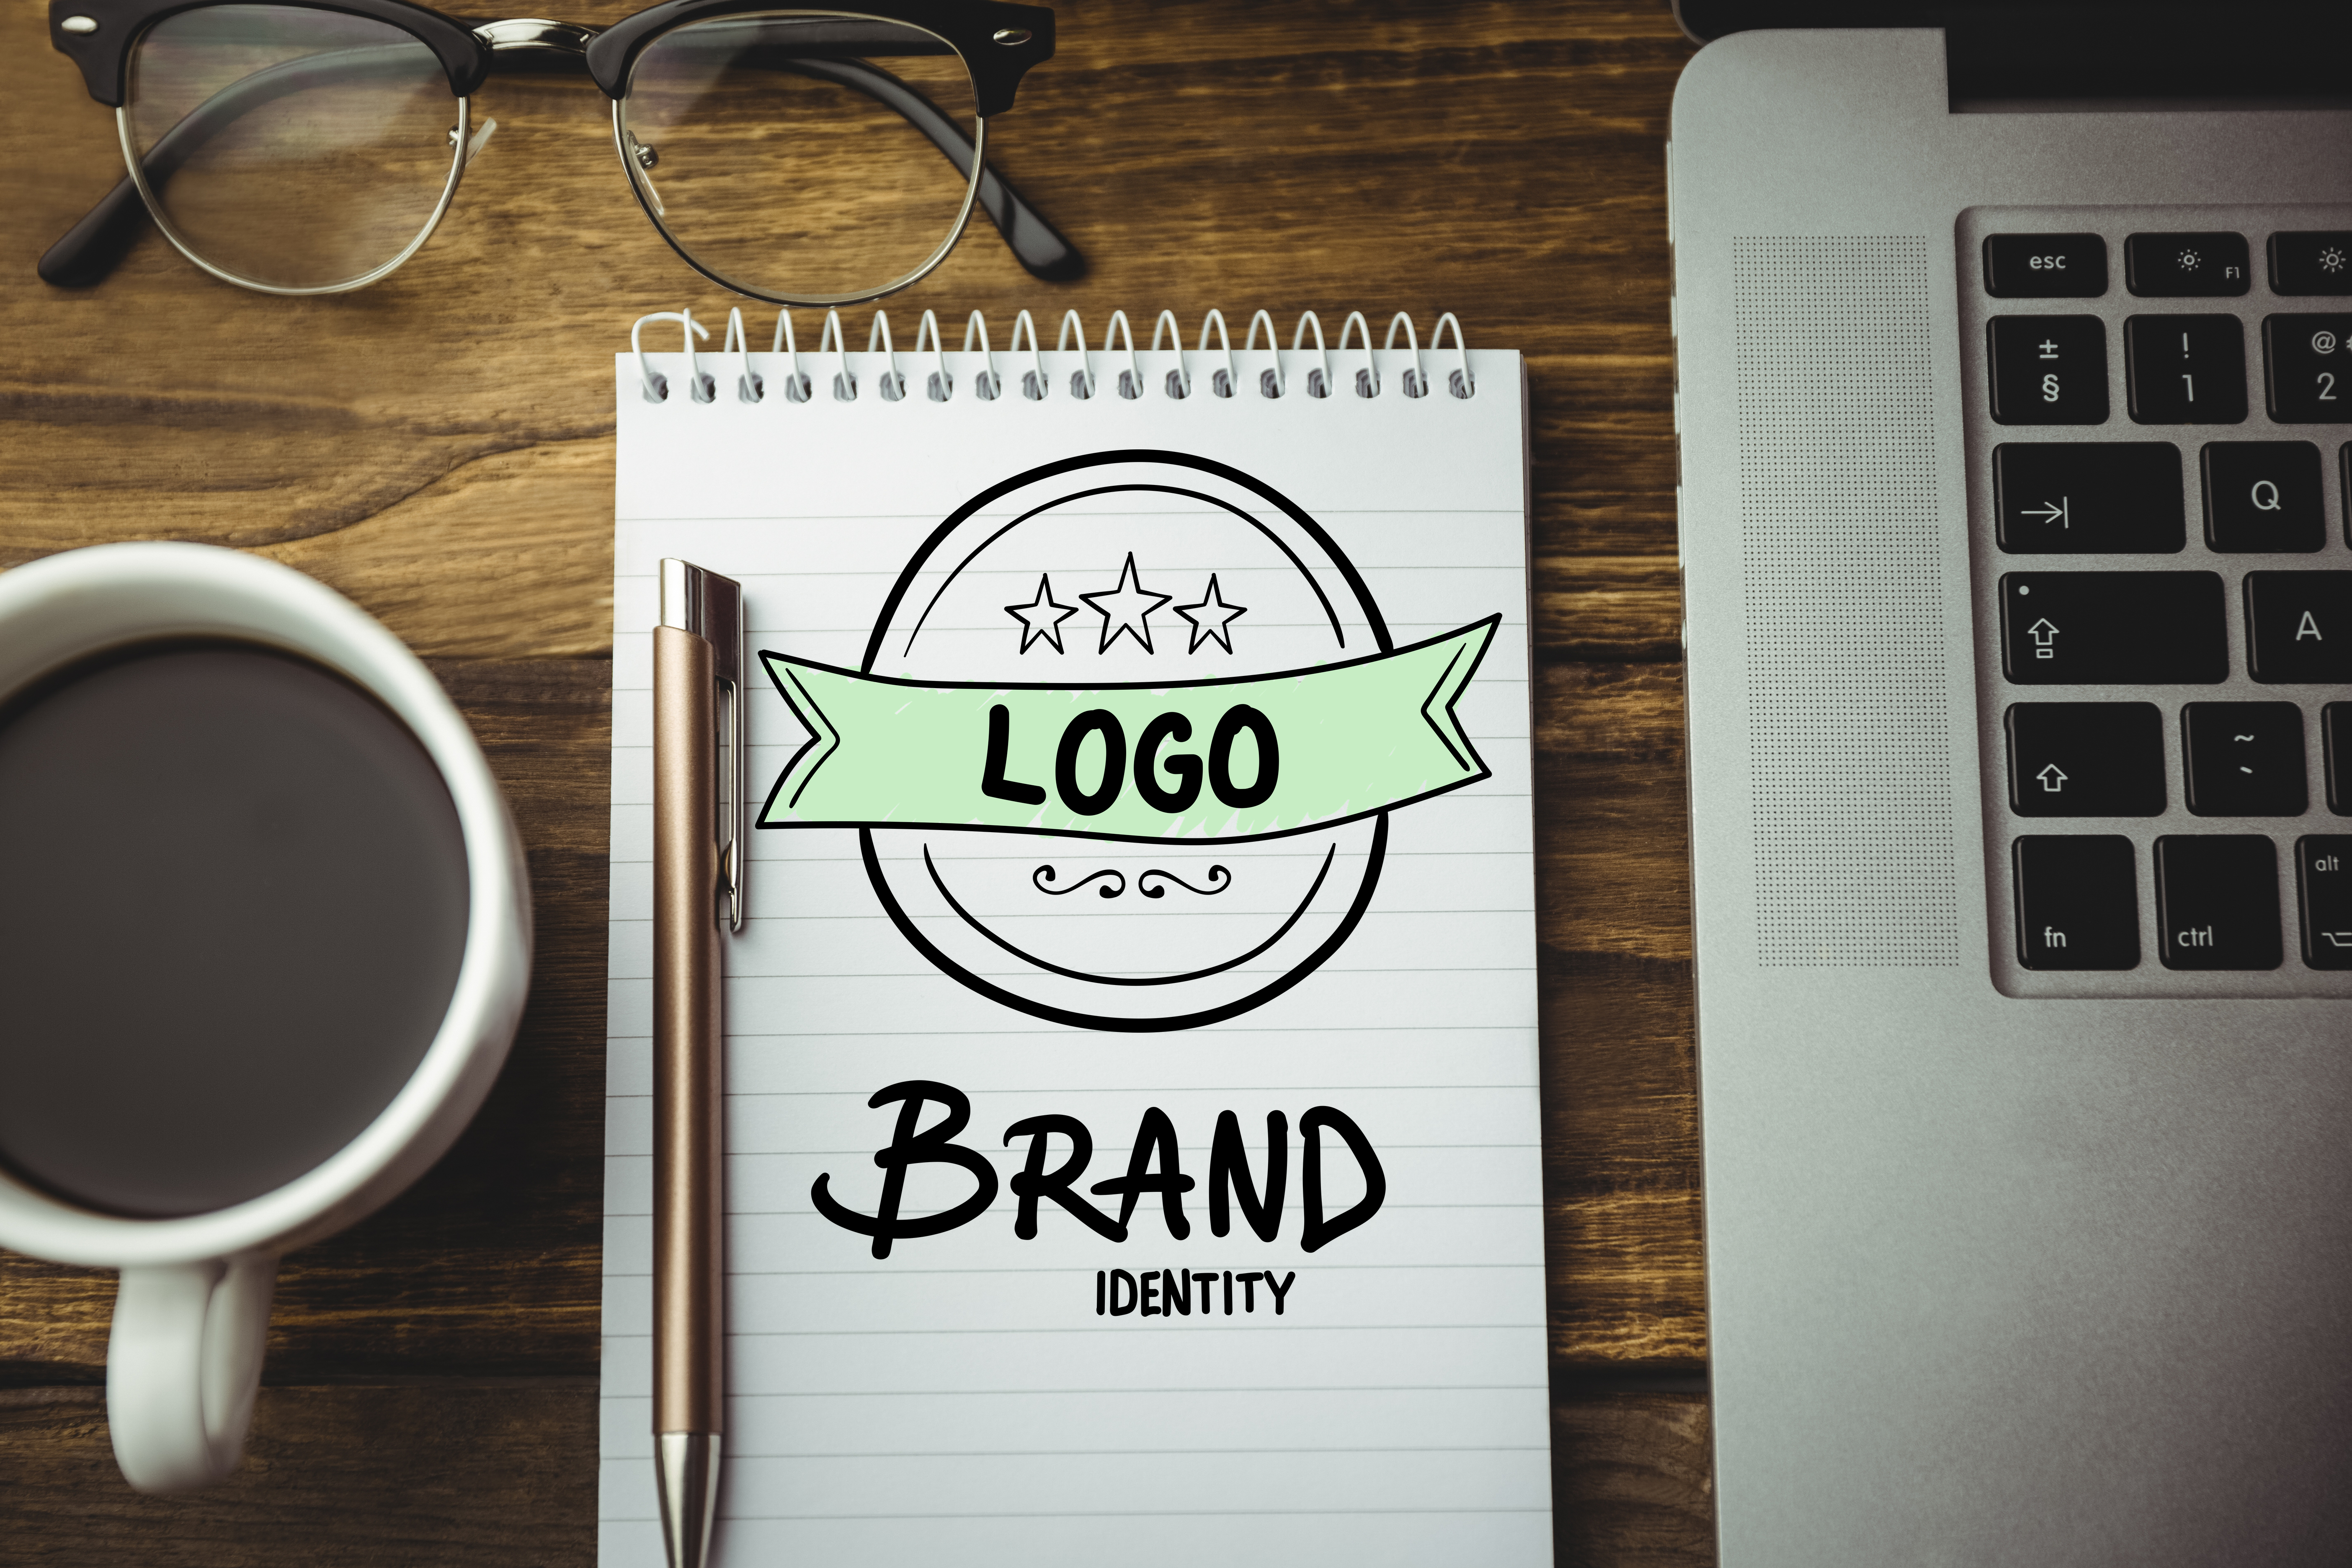 Logo and Brand identity services in Vancouver and surrey